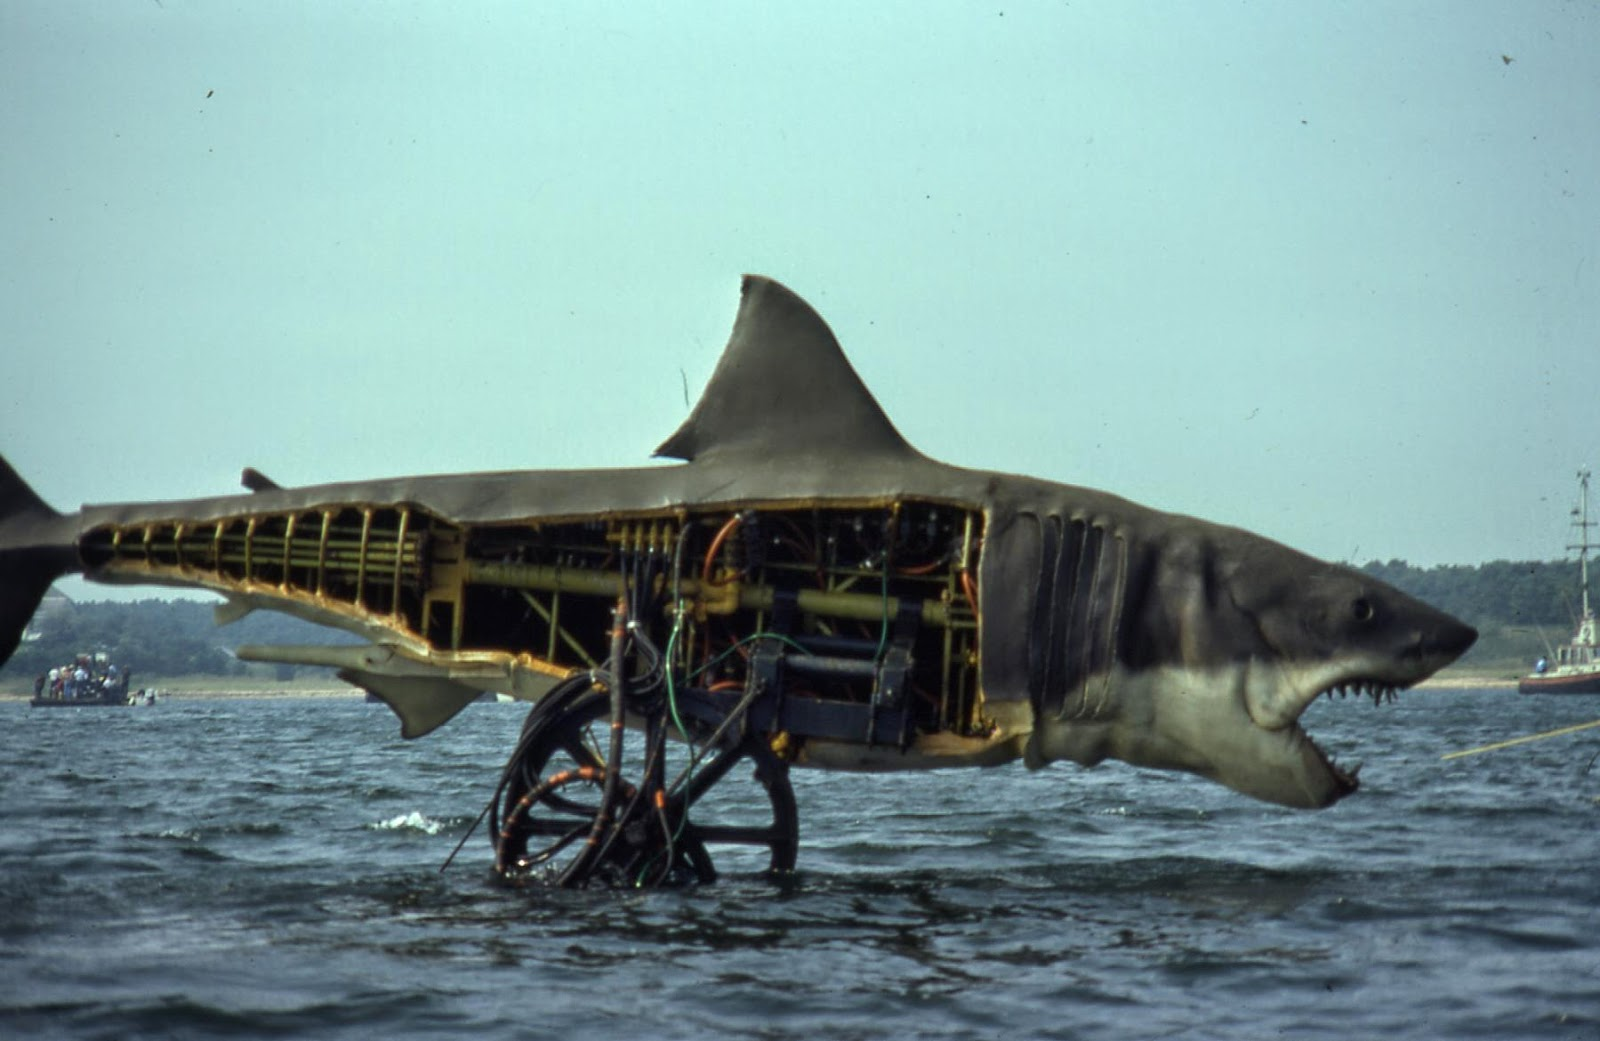 helicopter training indiana with The Accidental Auteur How Jaws Almost Derailed Steven Spielbergs Career on 506162445598501201 besides Strangers Have Best Candy Funny T Shirt furthermore Prehistoric 60th birthday tshirt 235775885951591866 furthermore The Moment Hero Pilot Harrison Ford Treated Golf Course additionally Happy 24th birthday t shirt 235696457926540438.